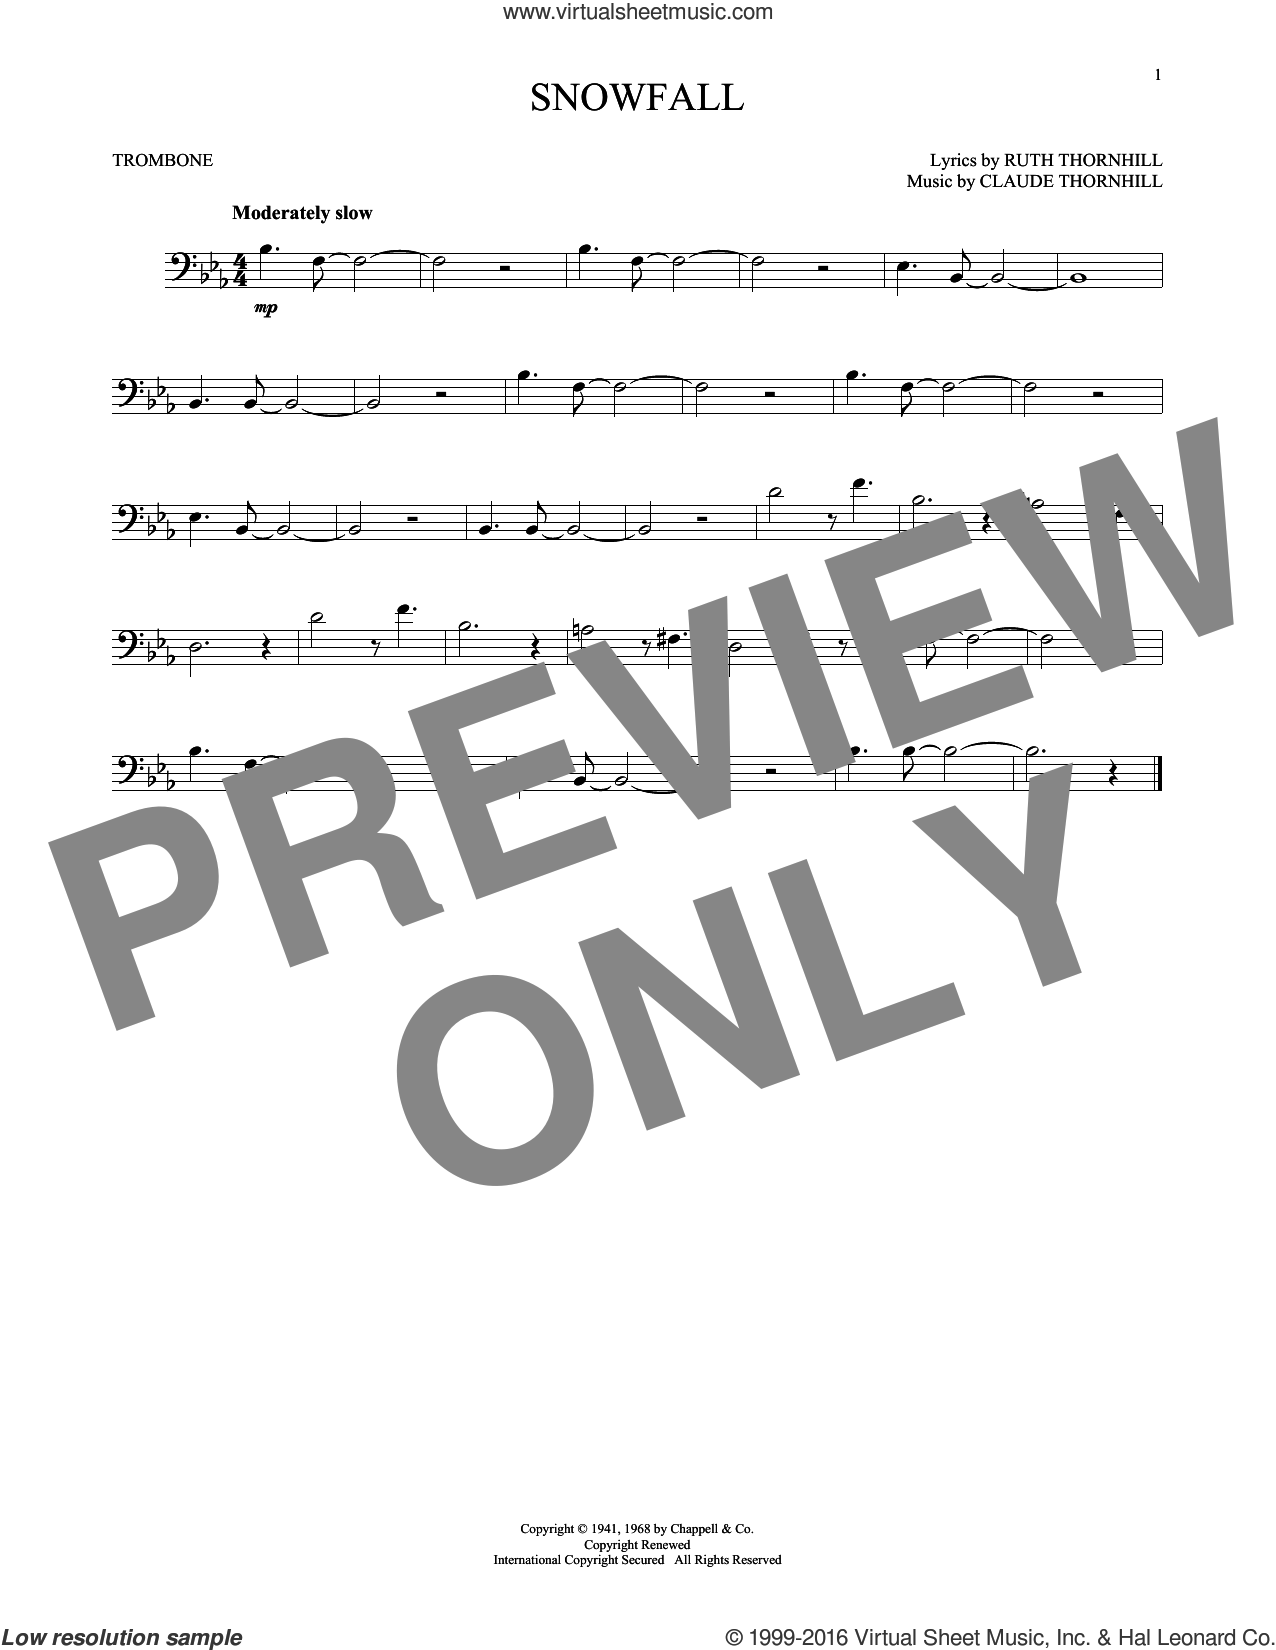 Snowfall sheet music for trombone solo by Claude Thornhill, Tony Bennett, Claude & Ruth Thornhill and Ruth Thornhill, intermediate skill level